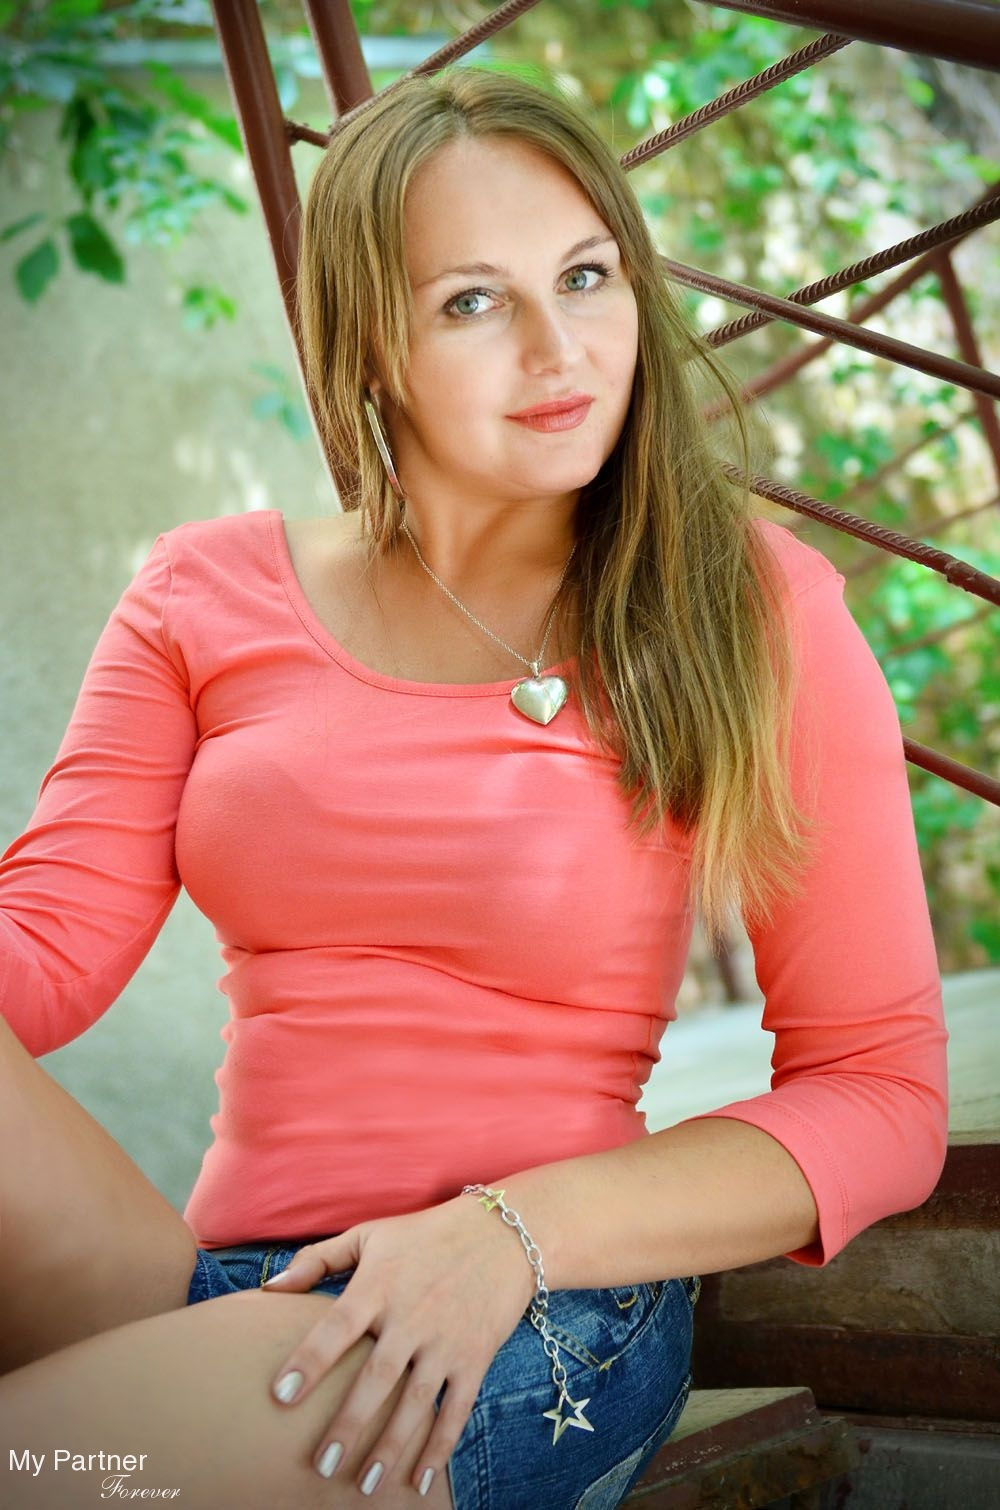 Dating site for alpha females to meet christian men